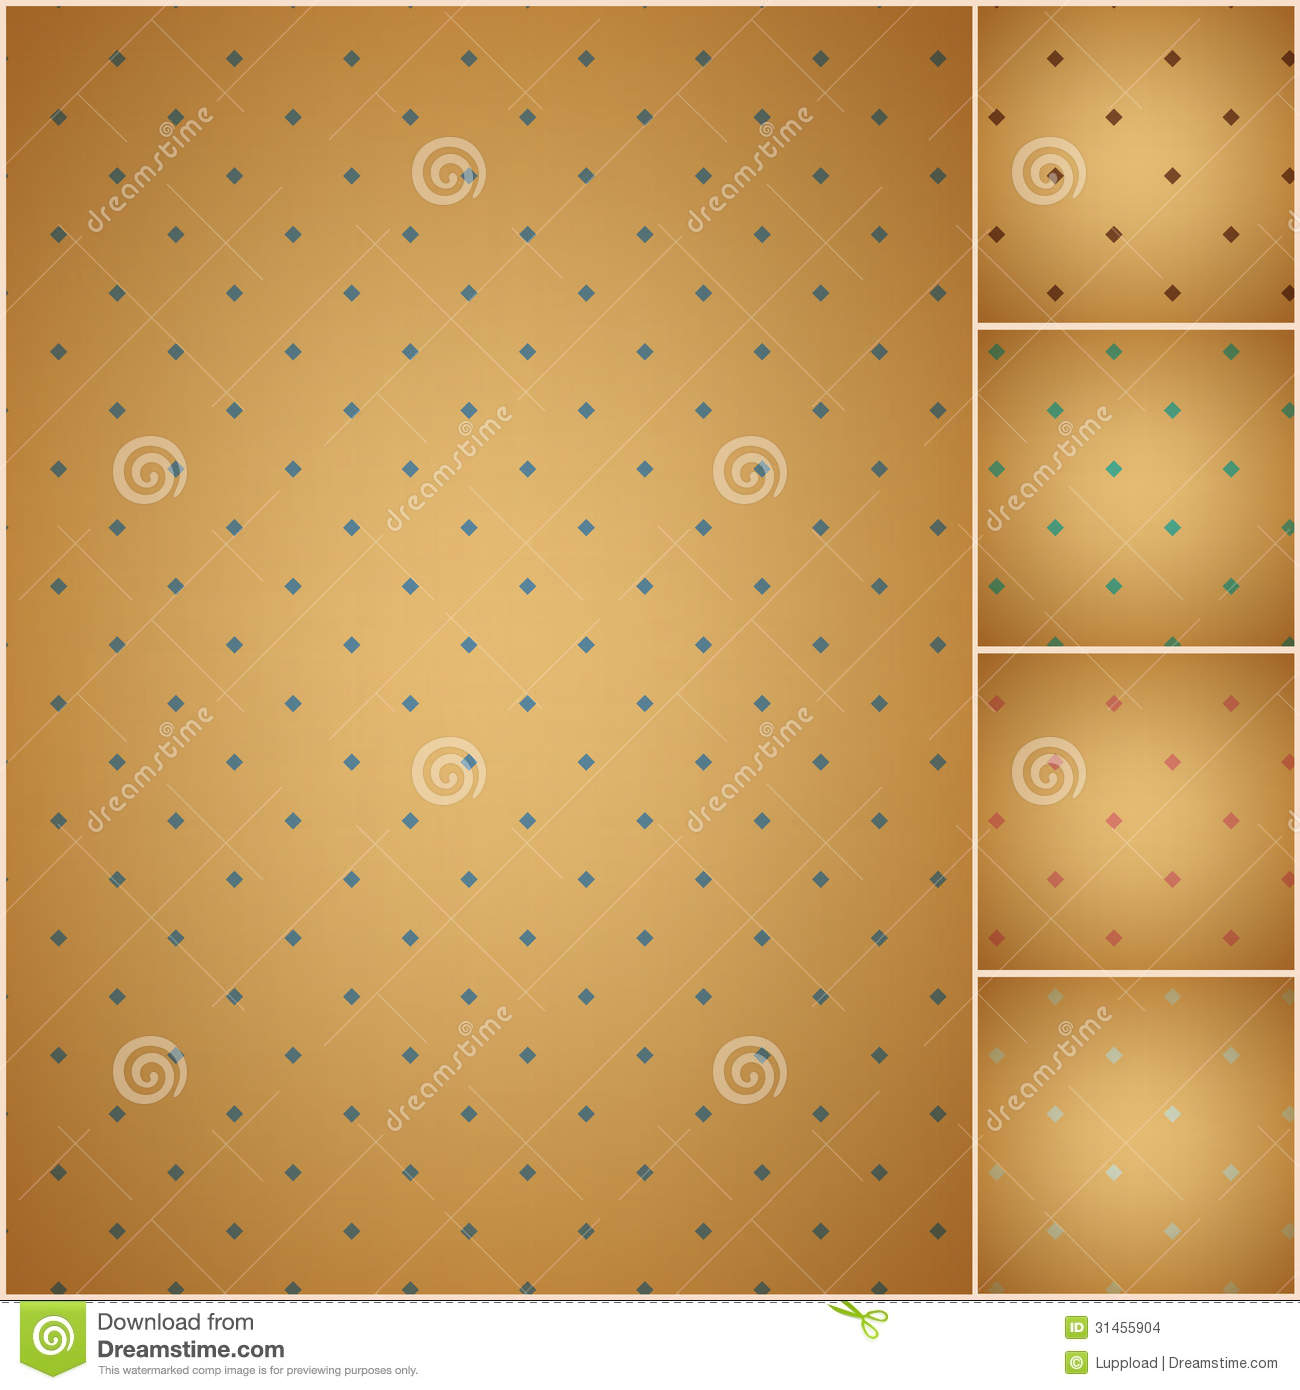 Faded Colorful Polka Dot Seamless Textured Pattern Stock Images